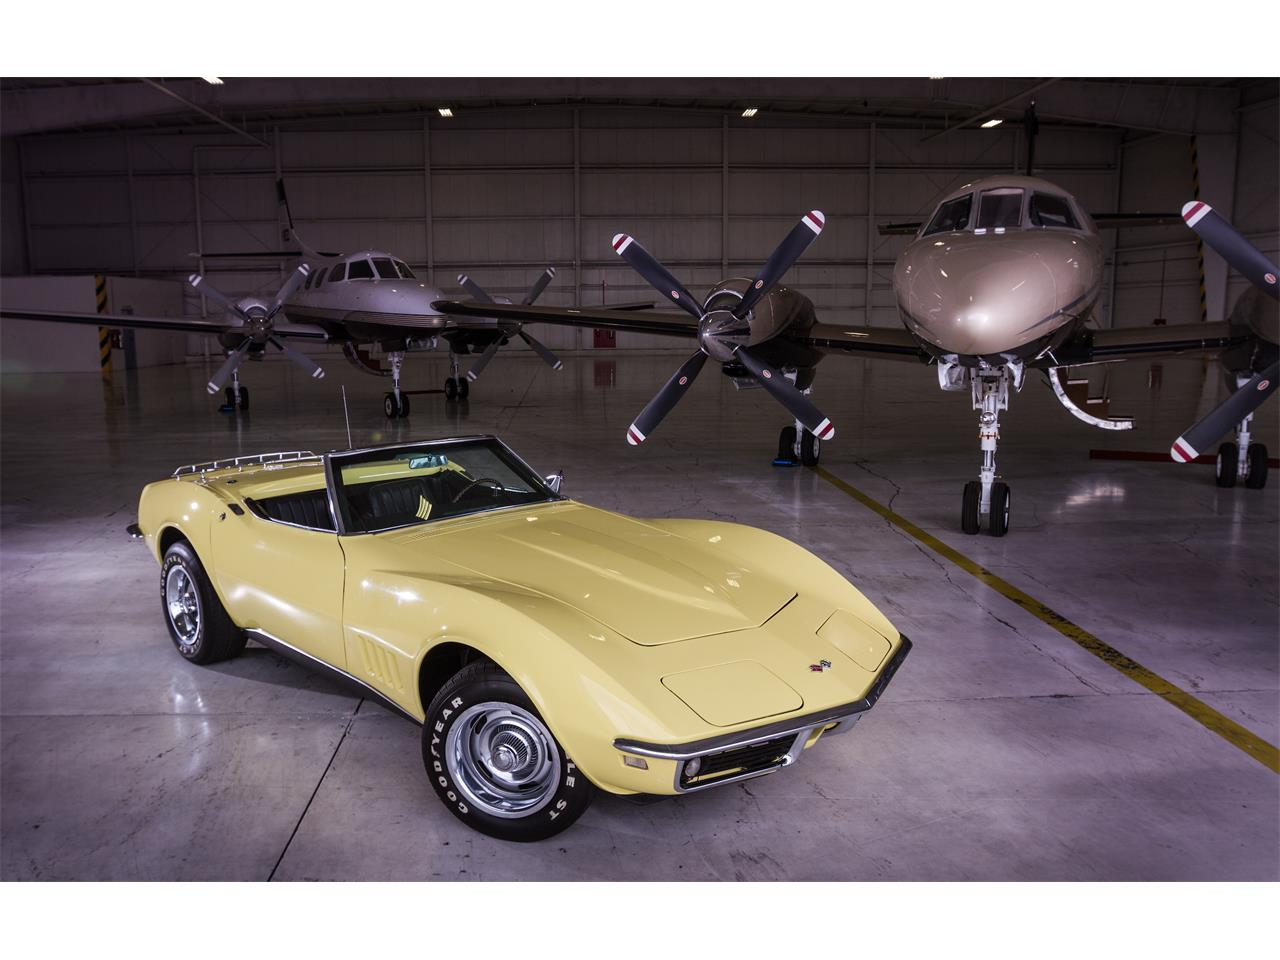 Large Picture of 1968 Chevrolet Corvette located in Scottsdale Arizona - $33,500.00 Offered by a Private Seller - KCON